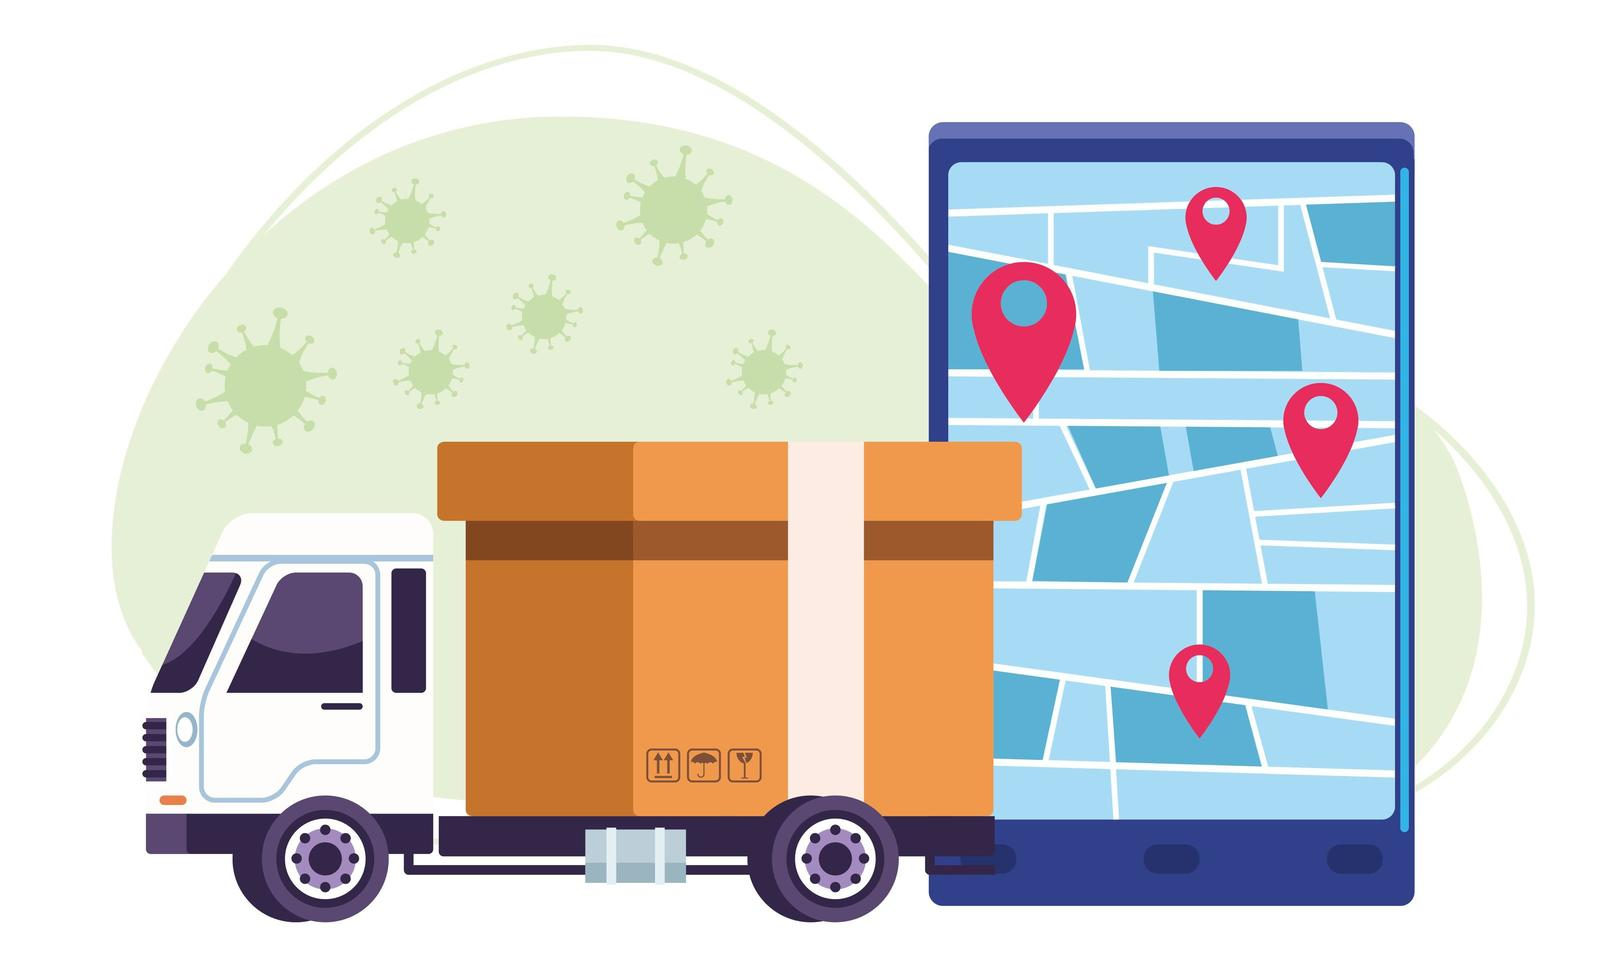 Truck delivery with COVID 19 particles vector